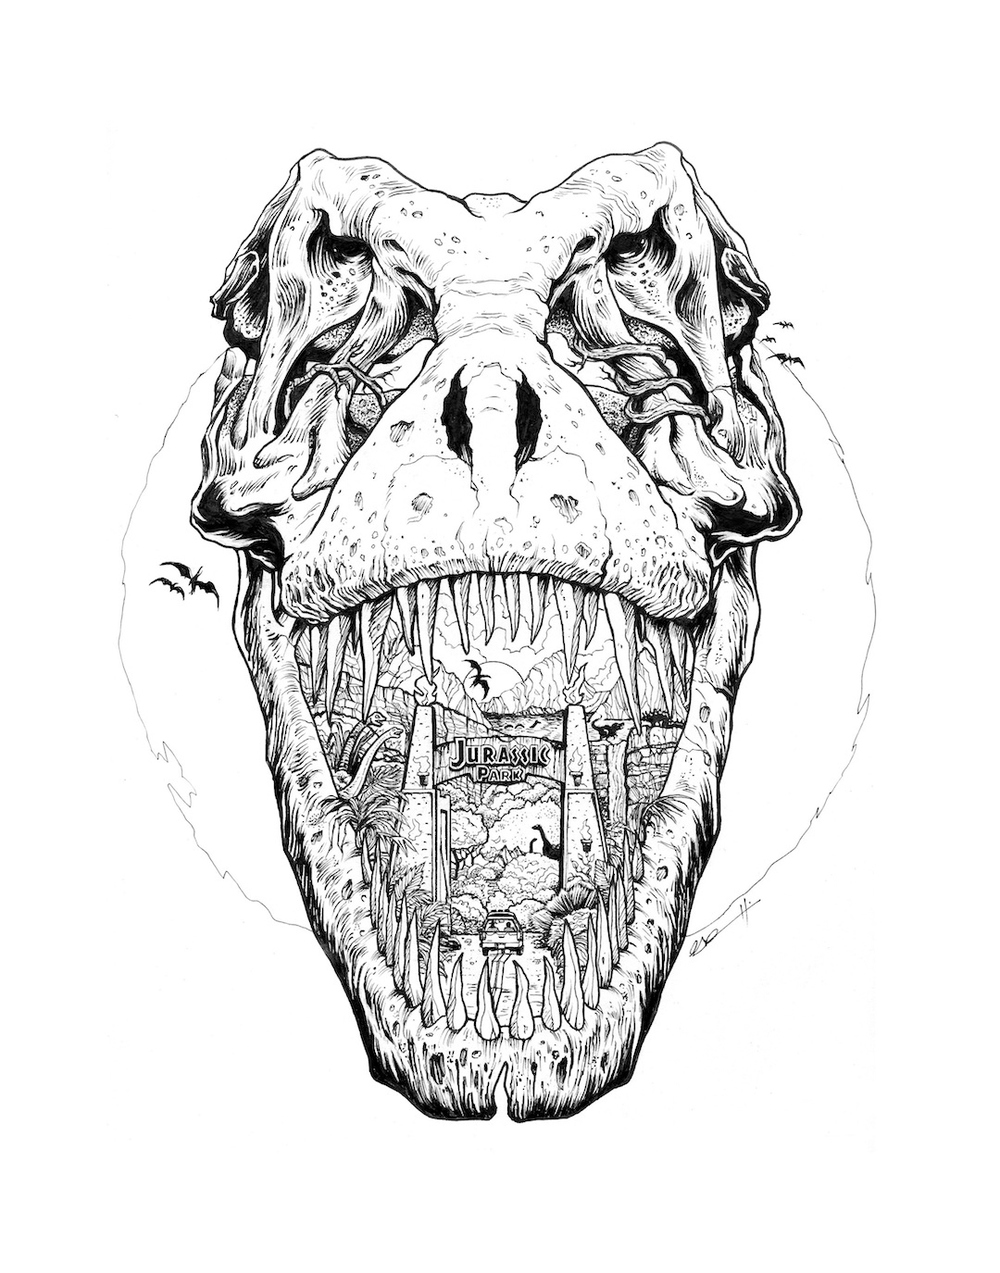 art-collection-from-mondos-jurassic-park-gallery-show1.jpg